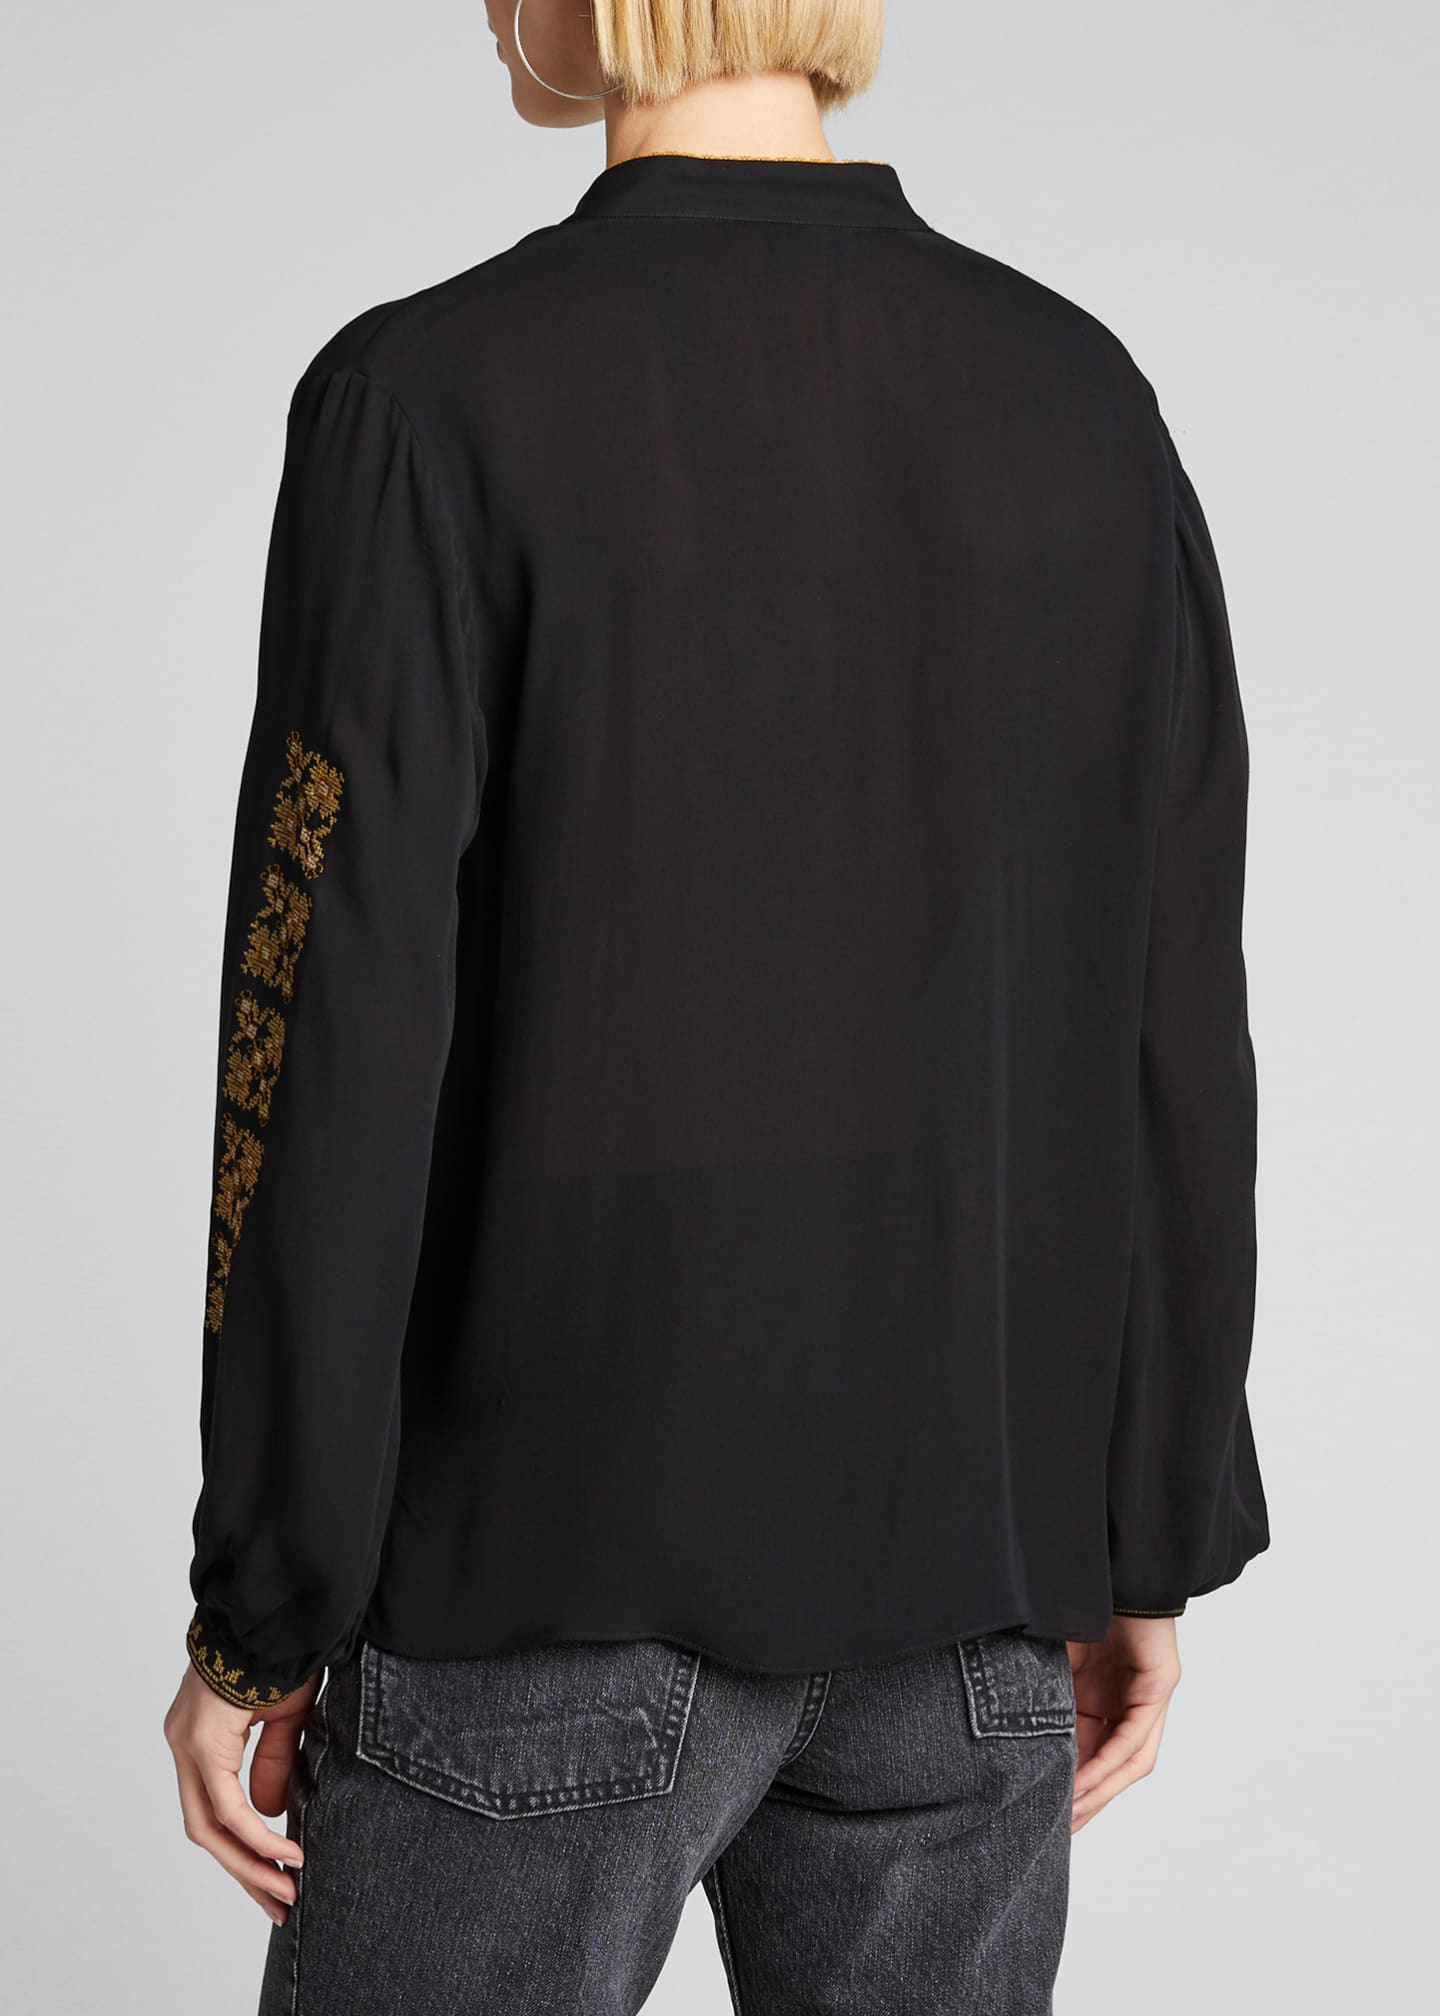 Image 2 of 5: Karina Palestinian Embroidered Top